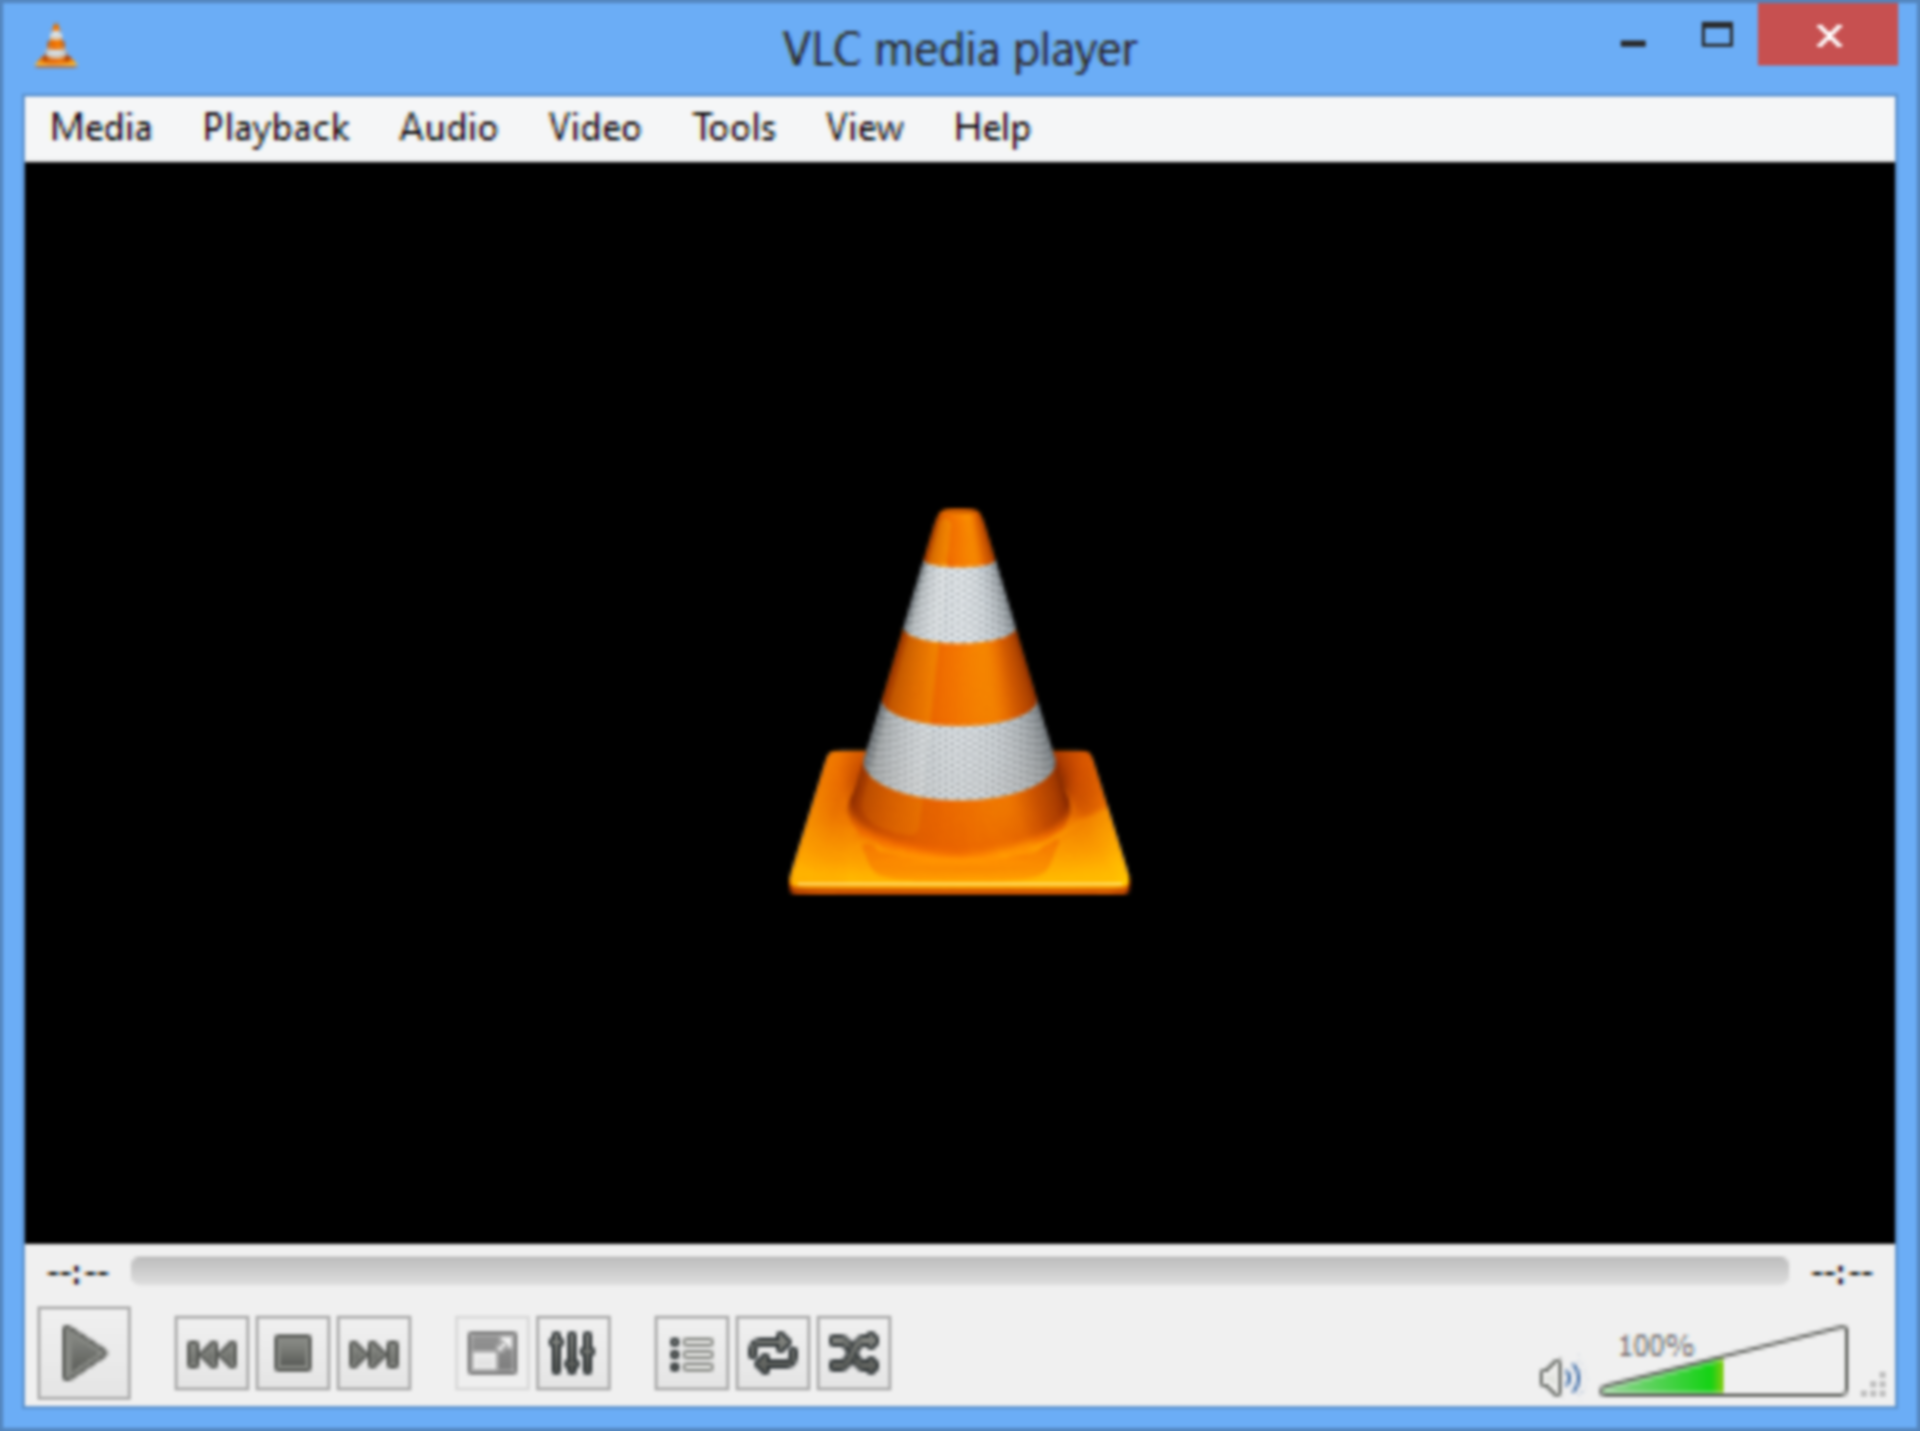 VLC media player's lapse in control flaws are making you vulnerable: Beware